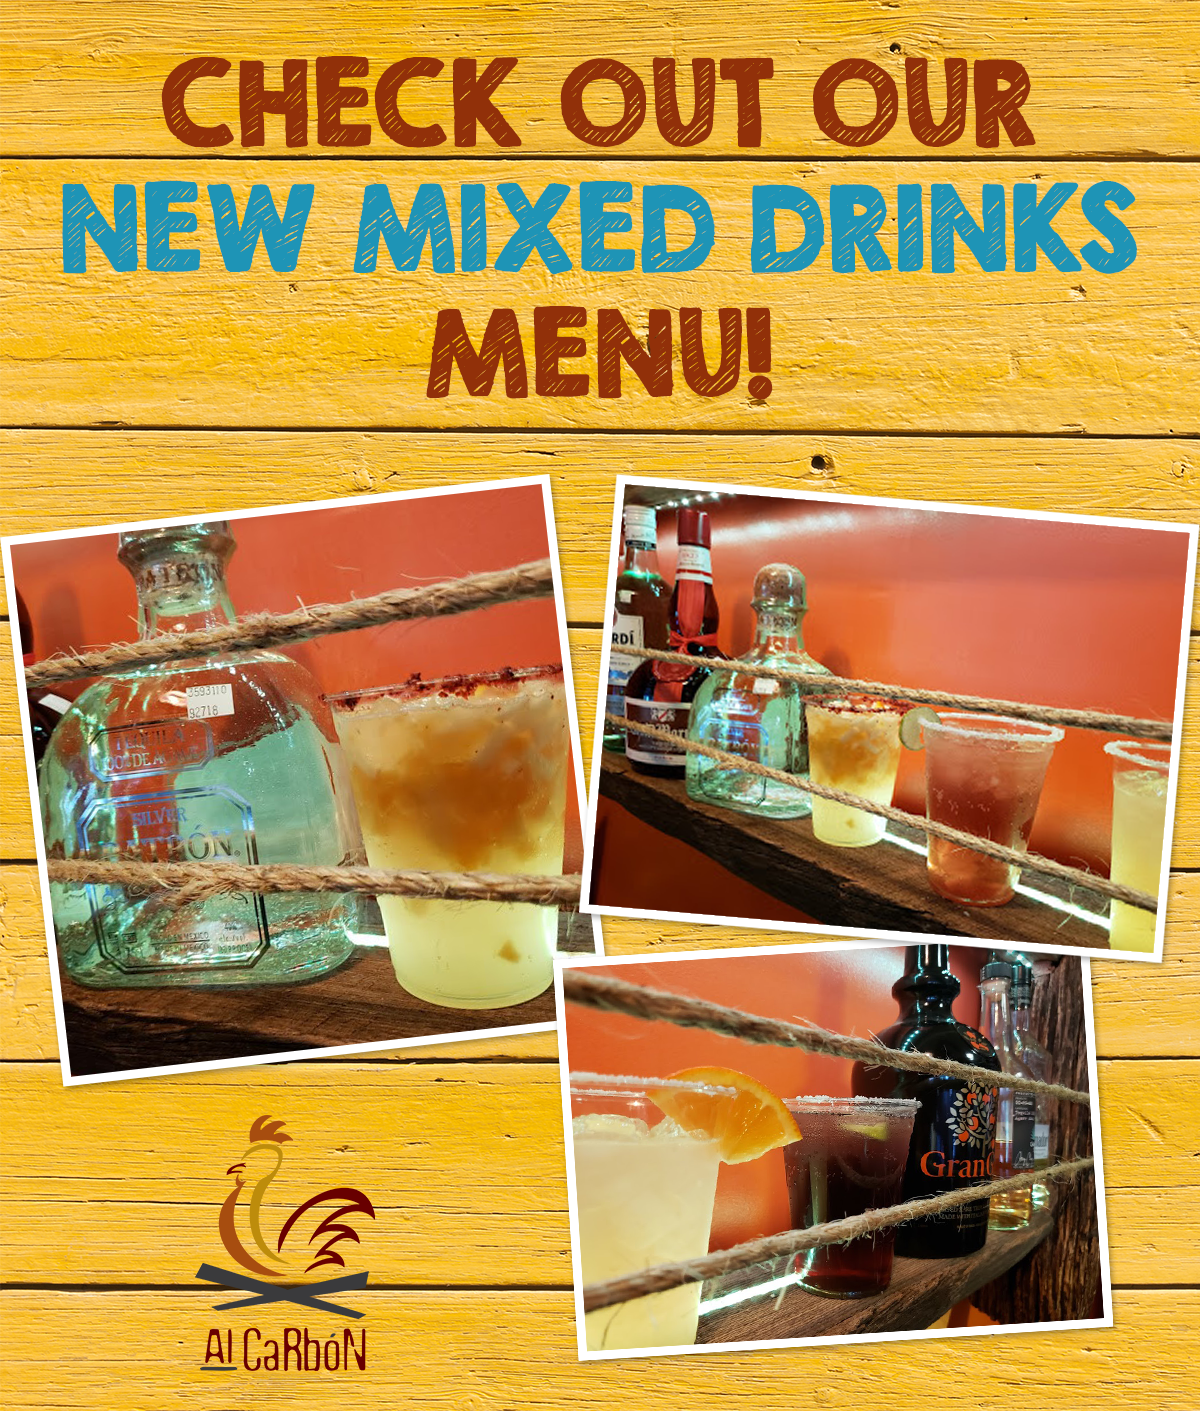 check out our new mixed drink menu!